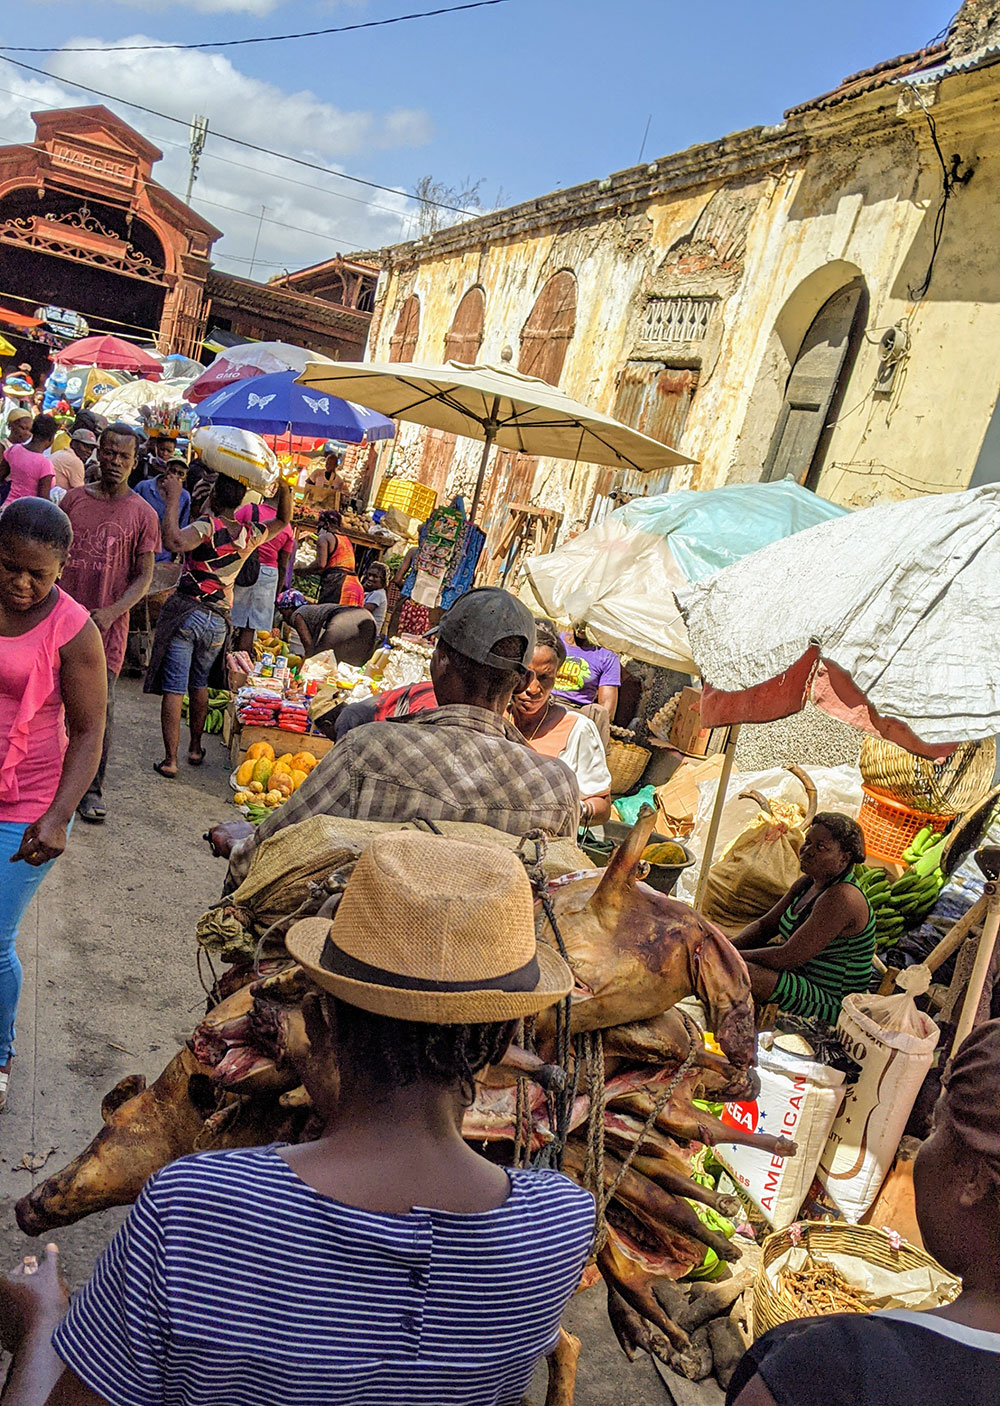 Outside of Marché Cluny Cap-Haitien